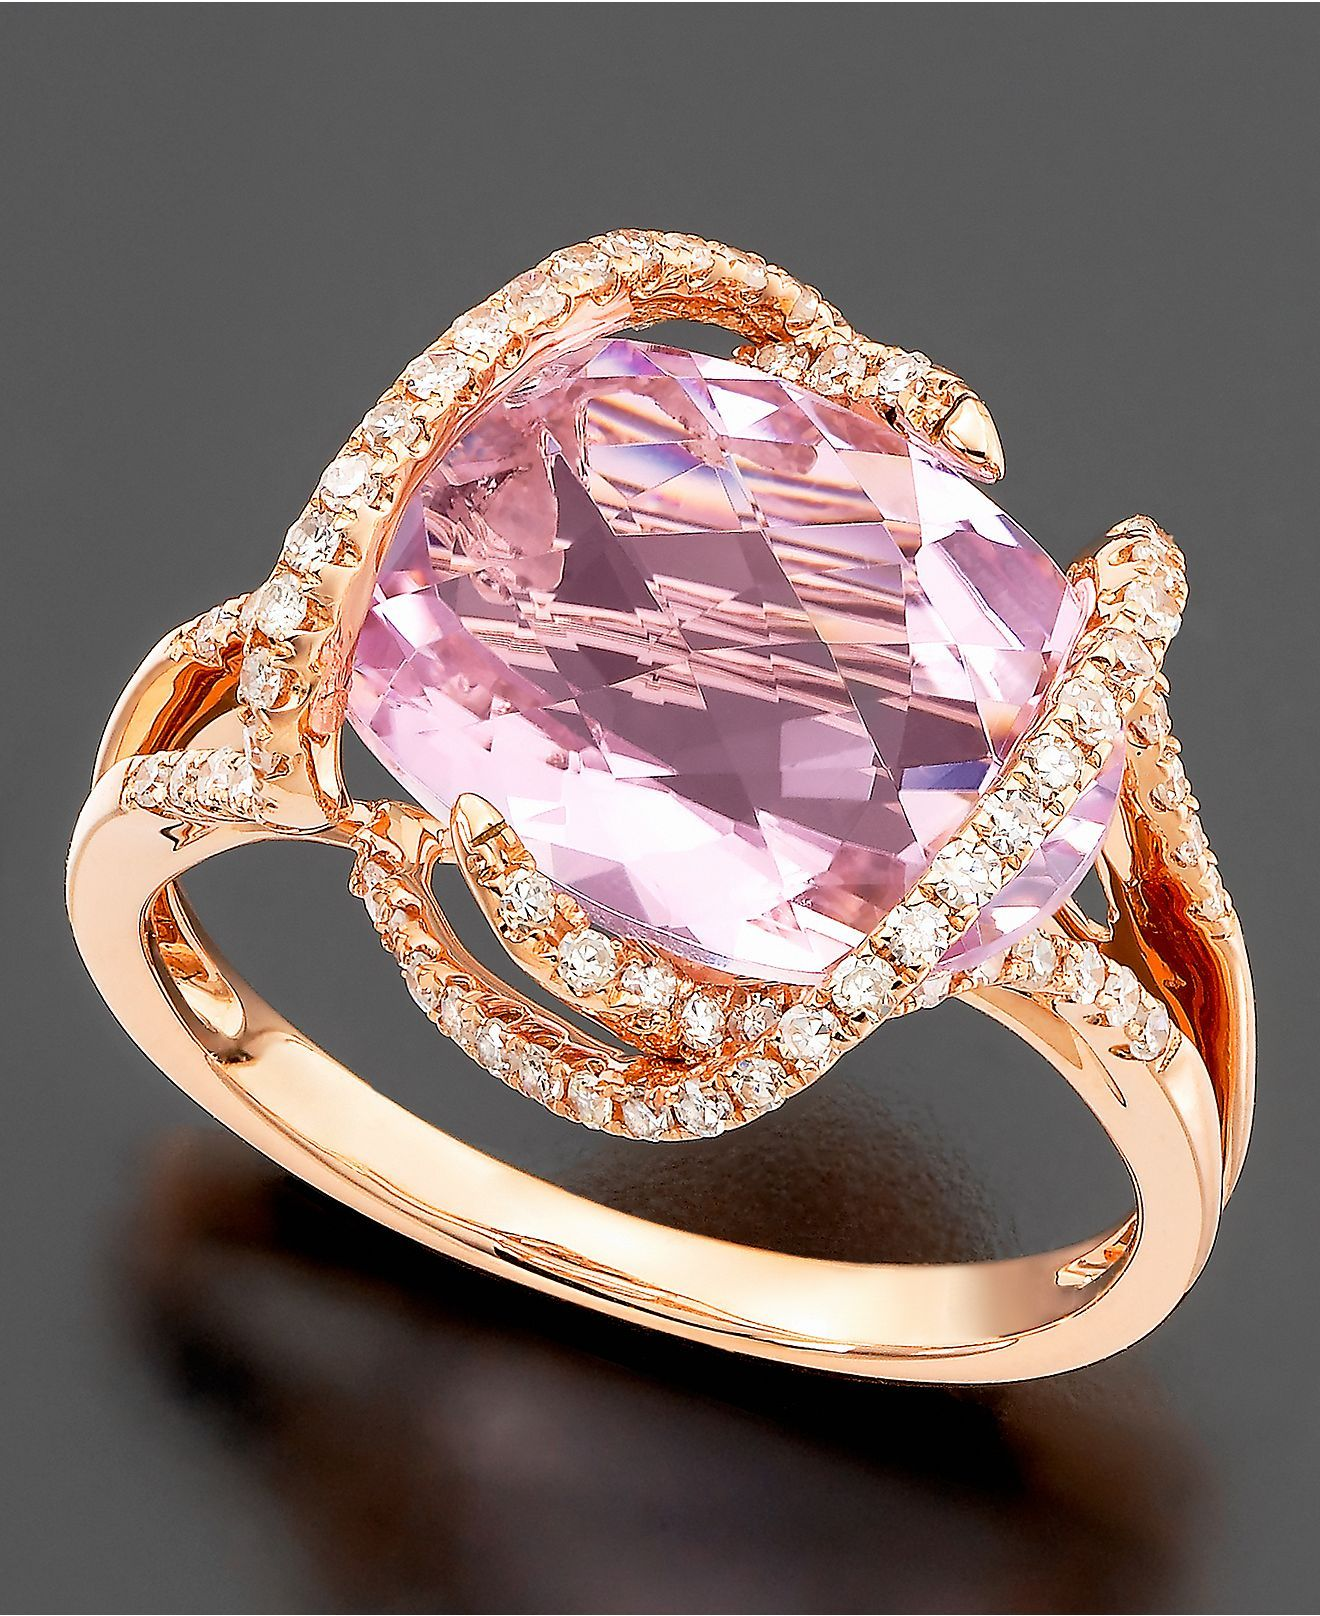 Effy Collection 14k Rose Gold Ring, Pink Amethyst (7-3/4 ct. t.w. ...